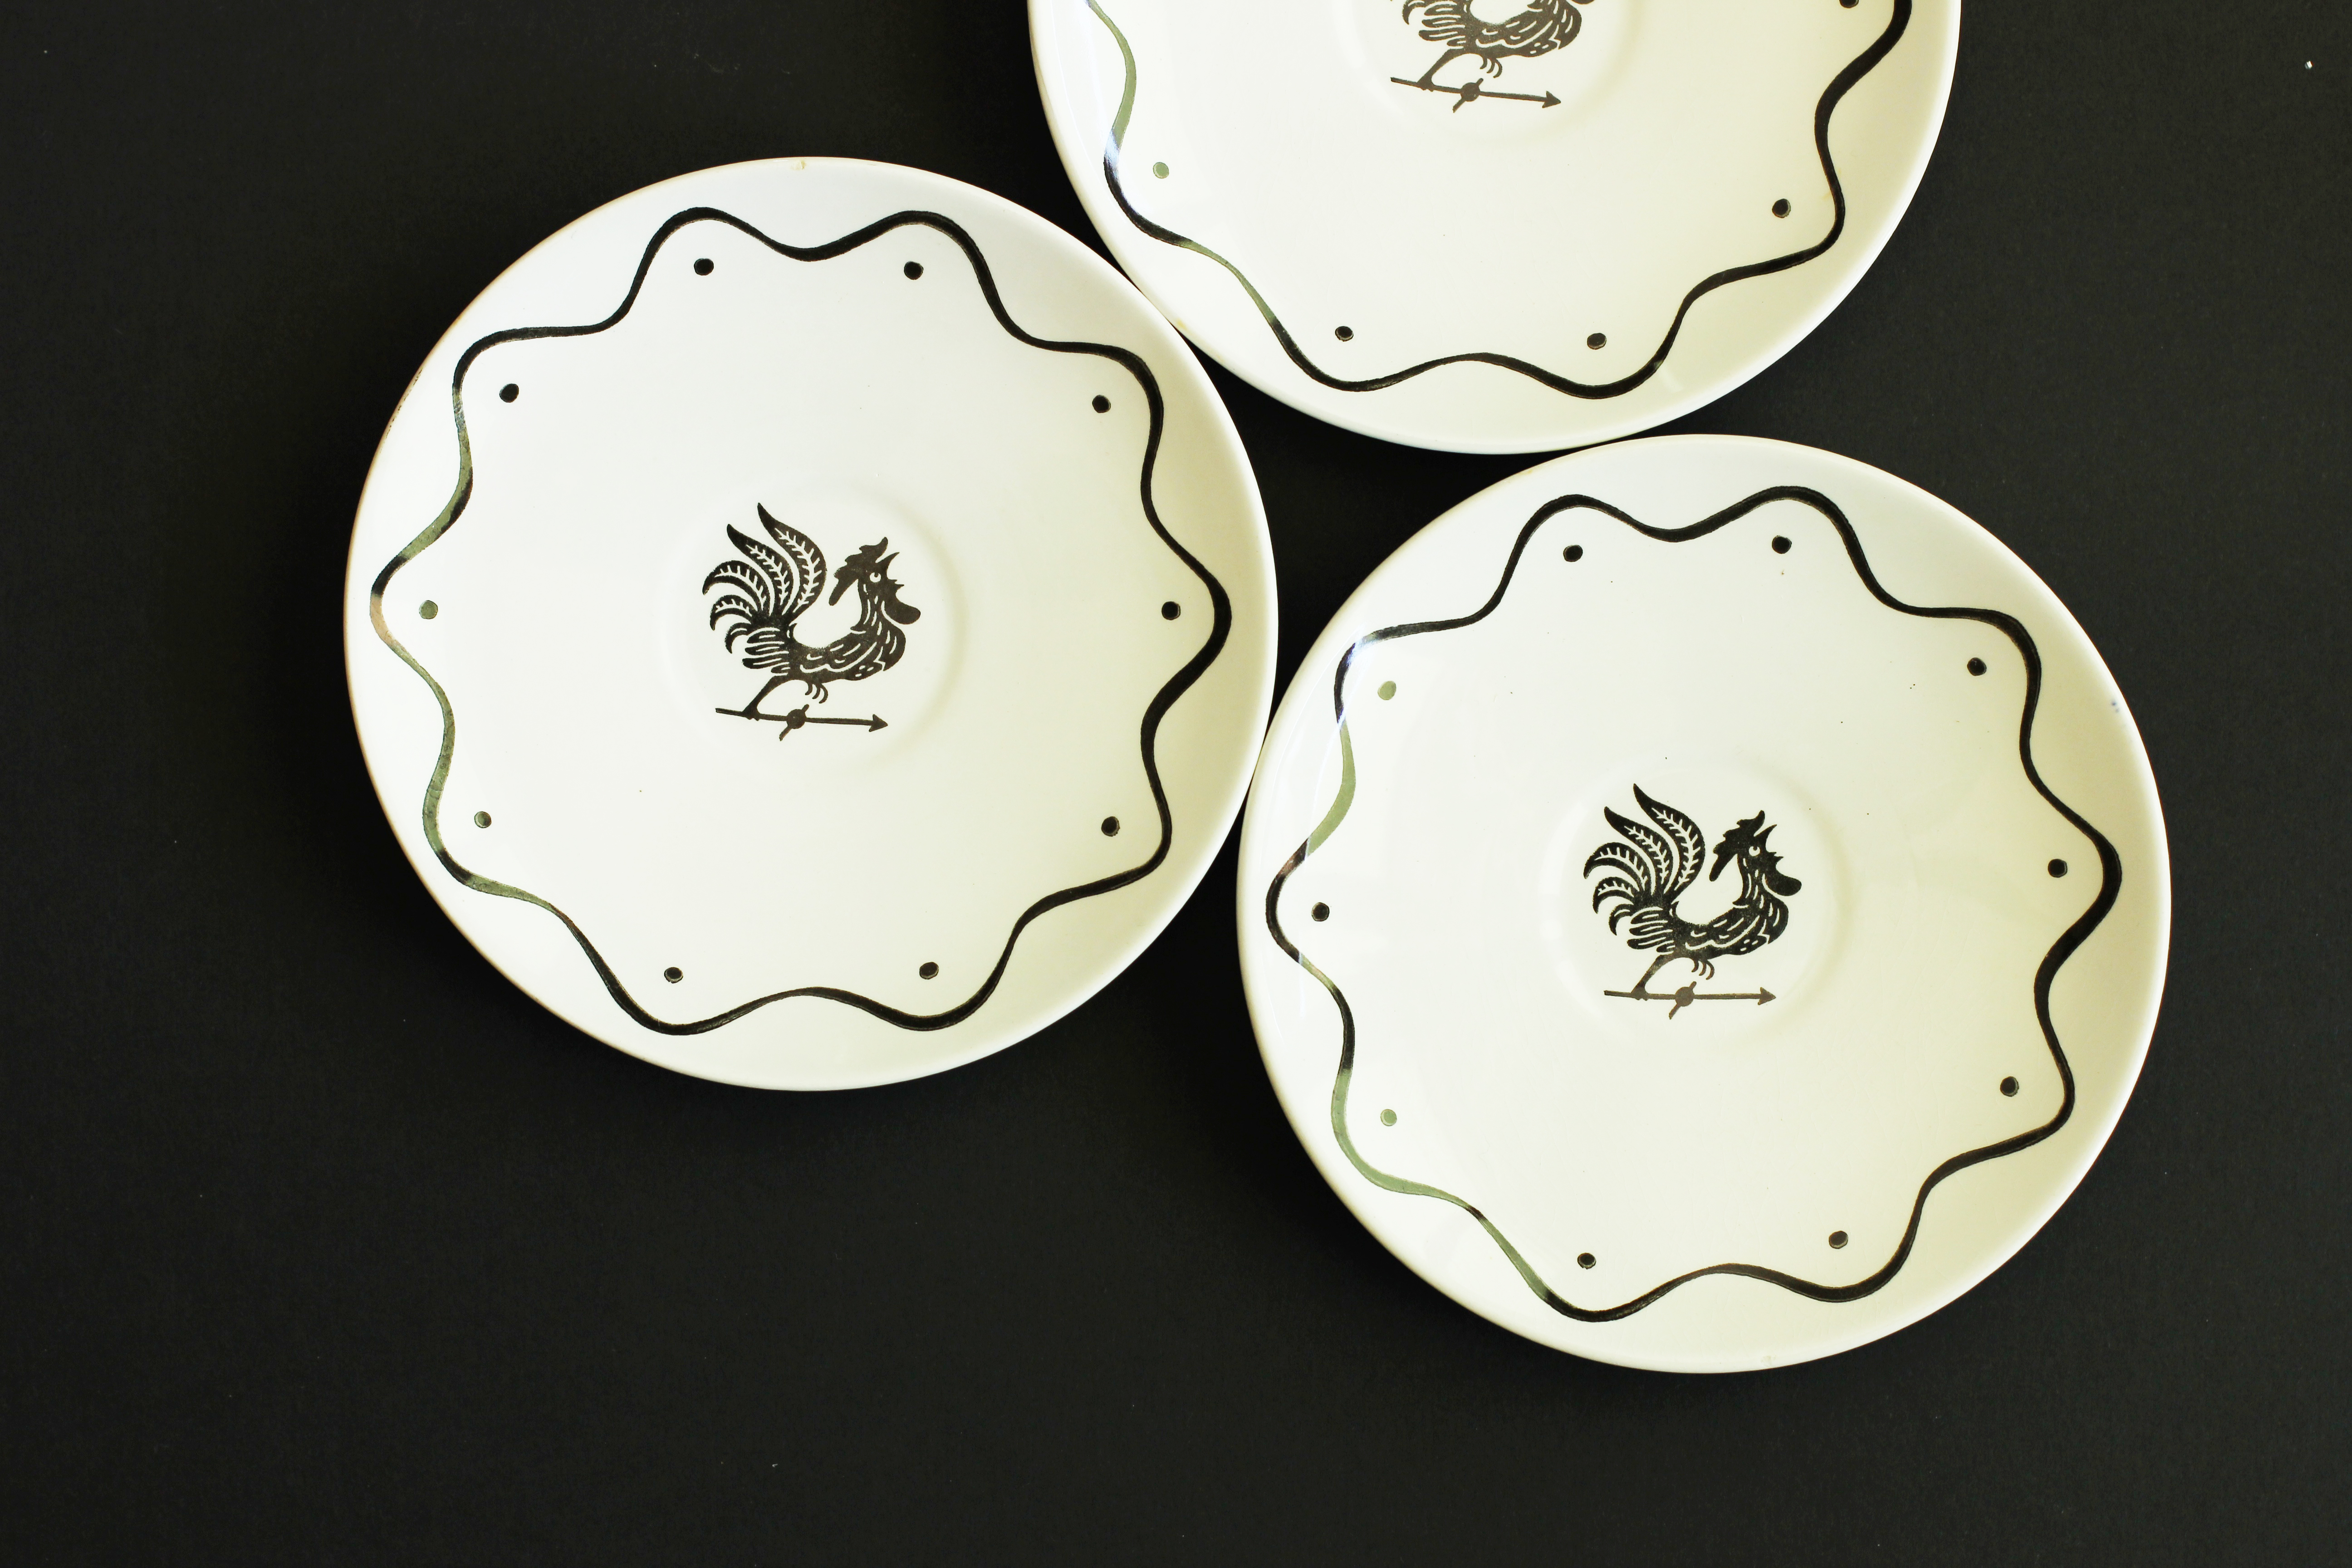 The Life of B - Mid Century Tableware Vintage Royal China Funky Rooster Plates & Dinnerware For Pennies + Vintage Art Finds